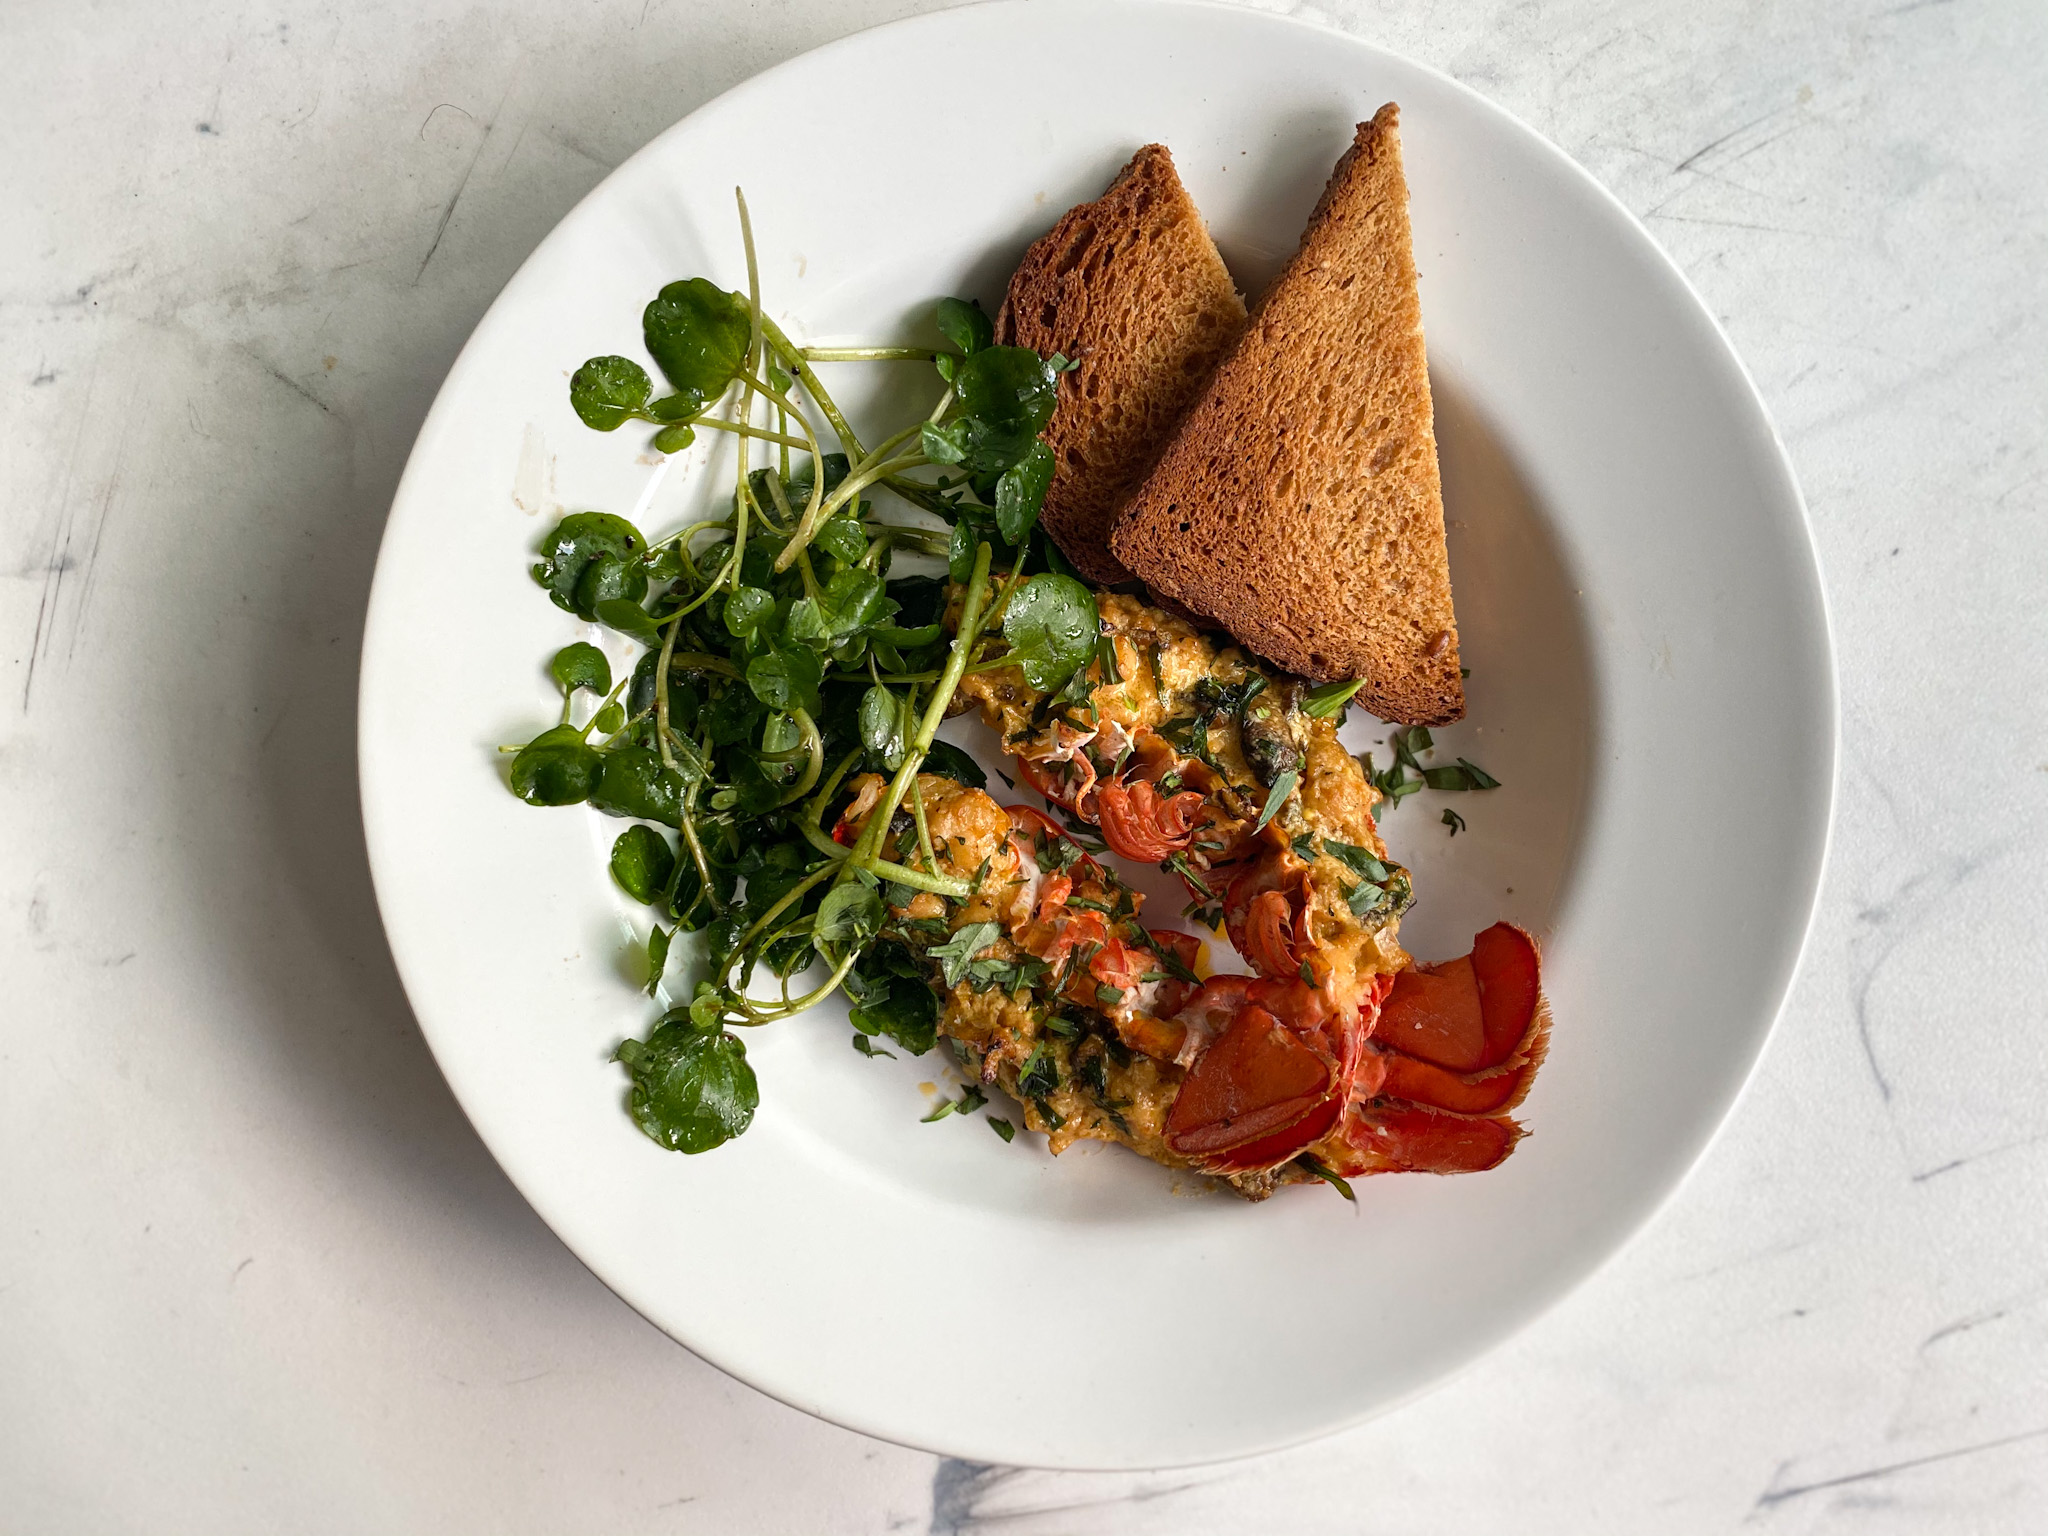 Lobster Thermidor served with toasted Dave's Killer Bread and a Watercress Salad